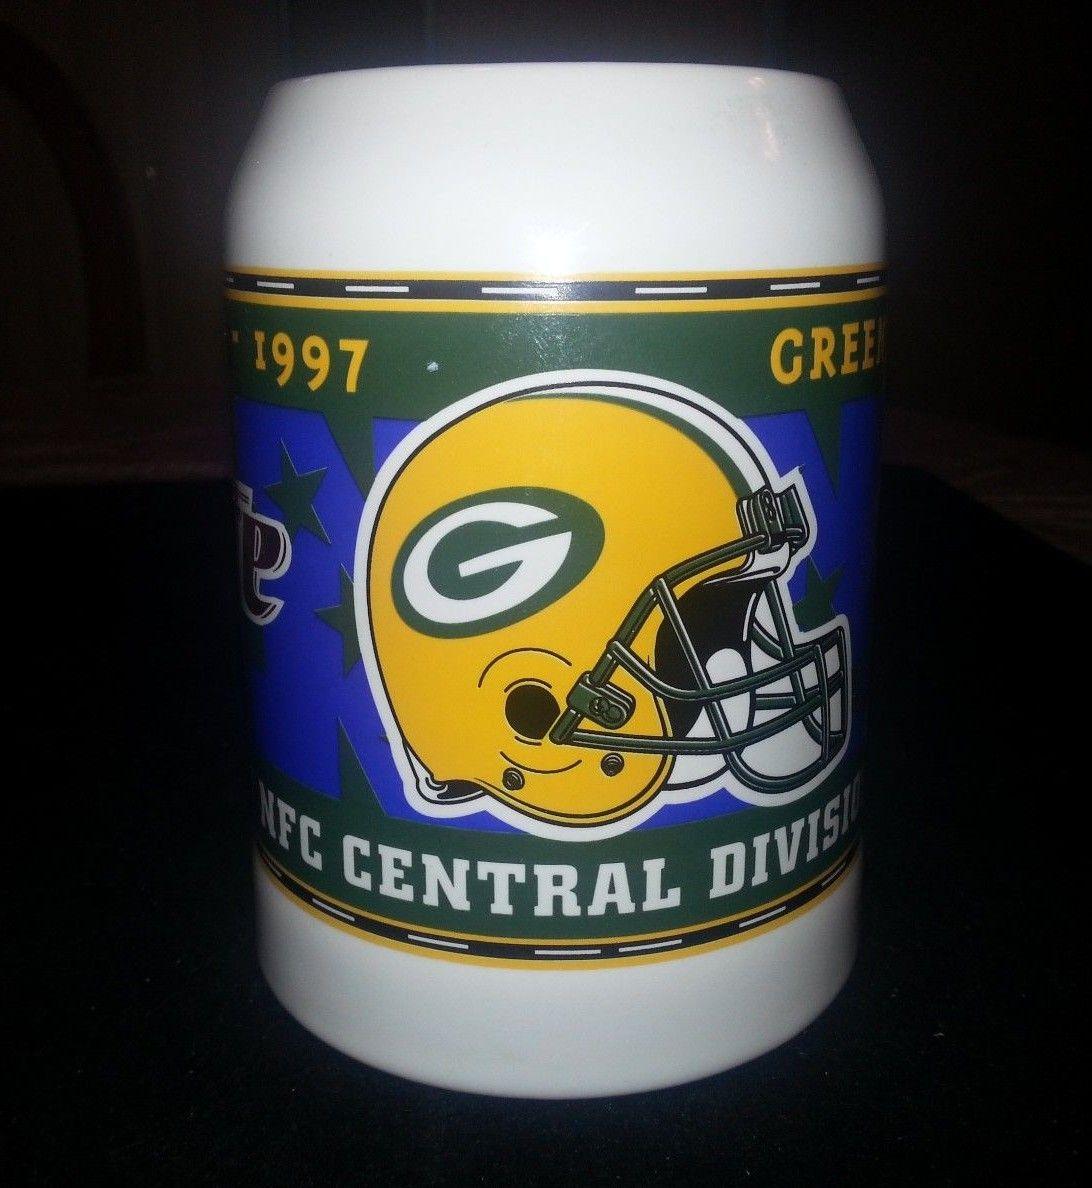 Green Bay Packers 1997 NFC Central Division Champions Miller Lite Beer Stein Mug | Hill Country Picker